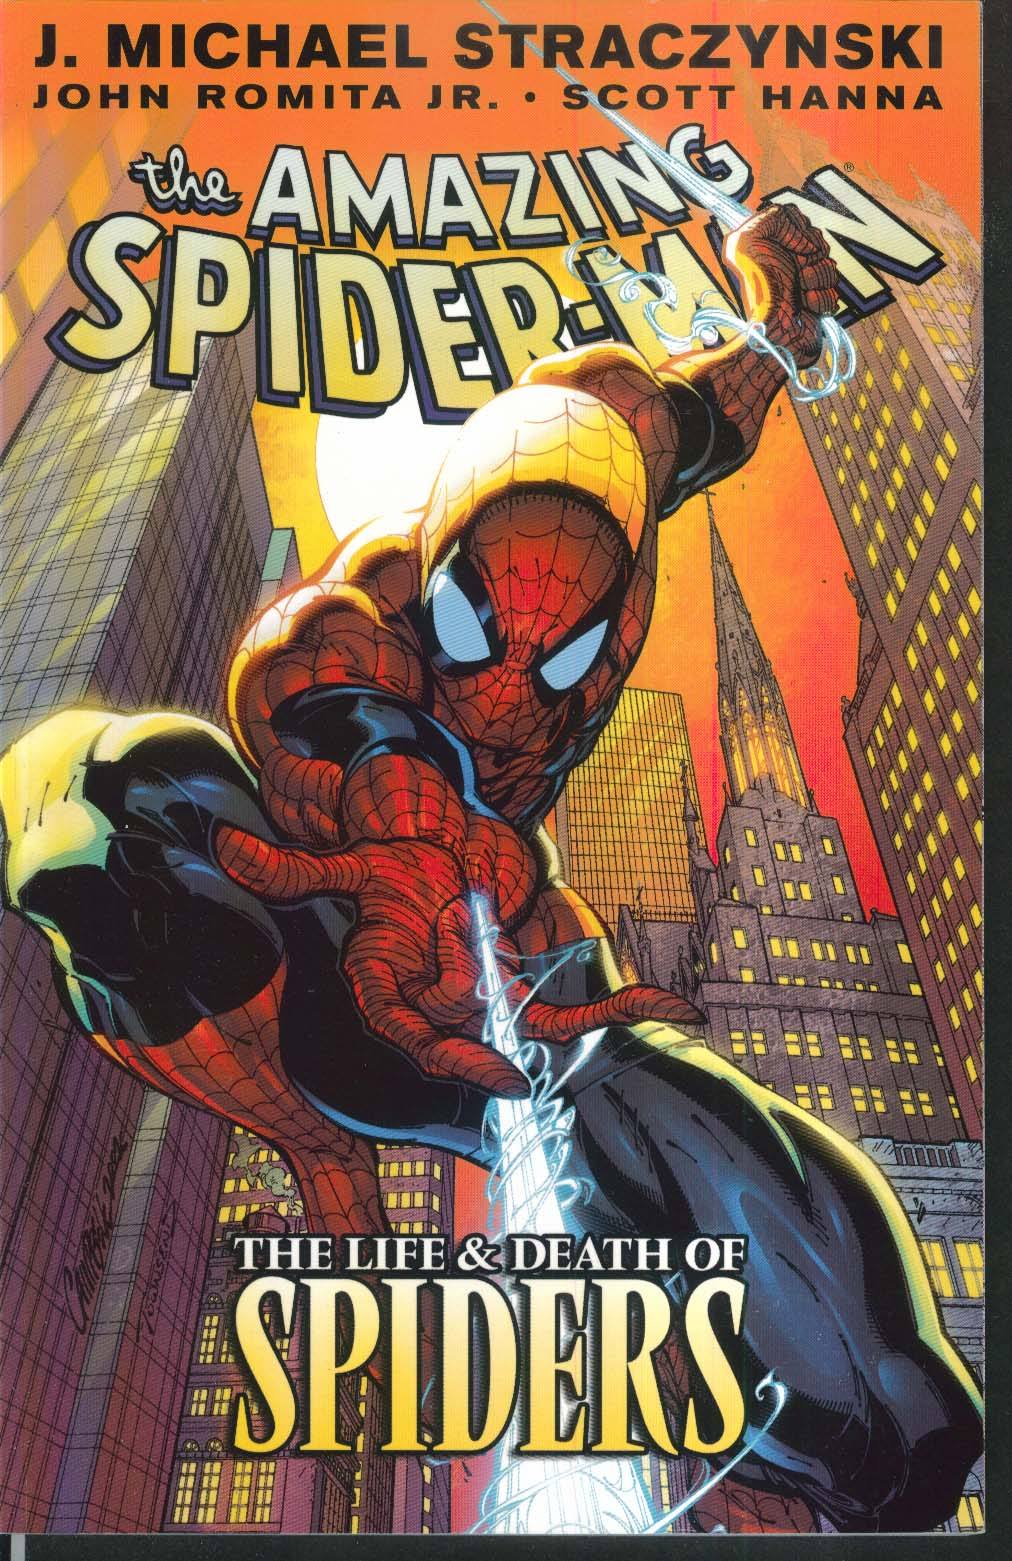 AMAZING SPIDER-MAN Vol 4 Life & Death Marvel Graphic Novel 2nd Printing 2004